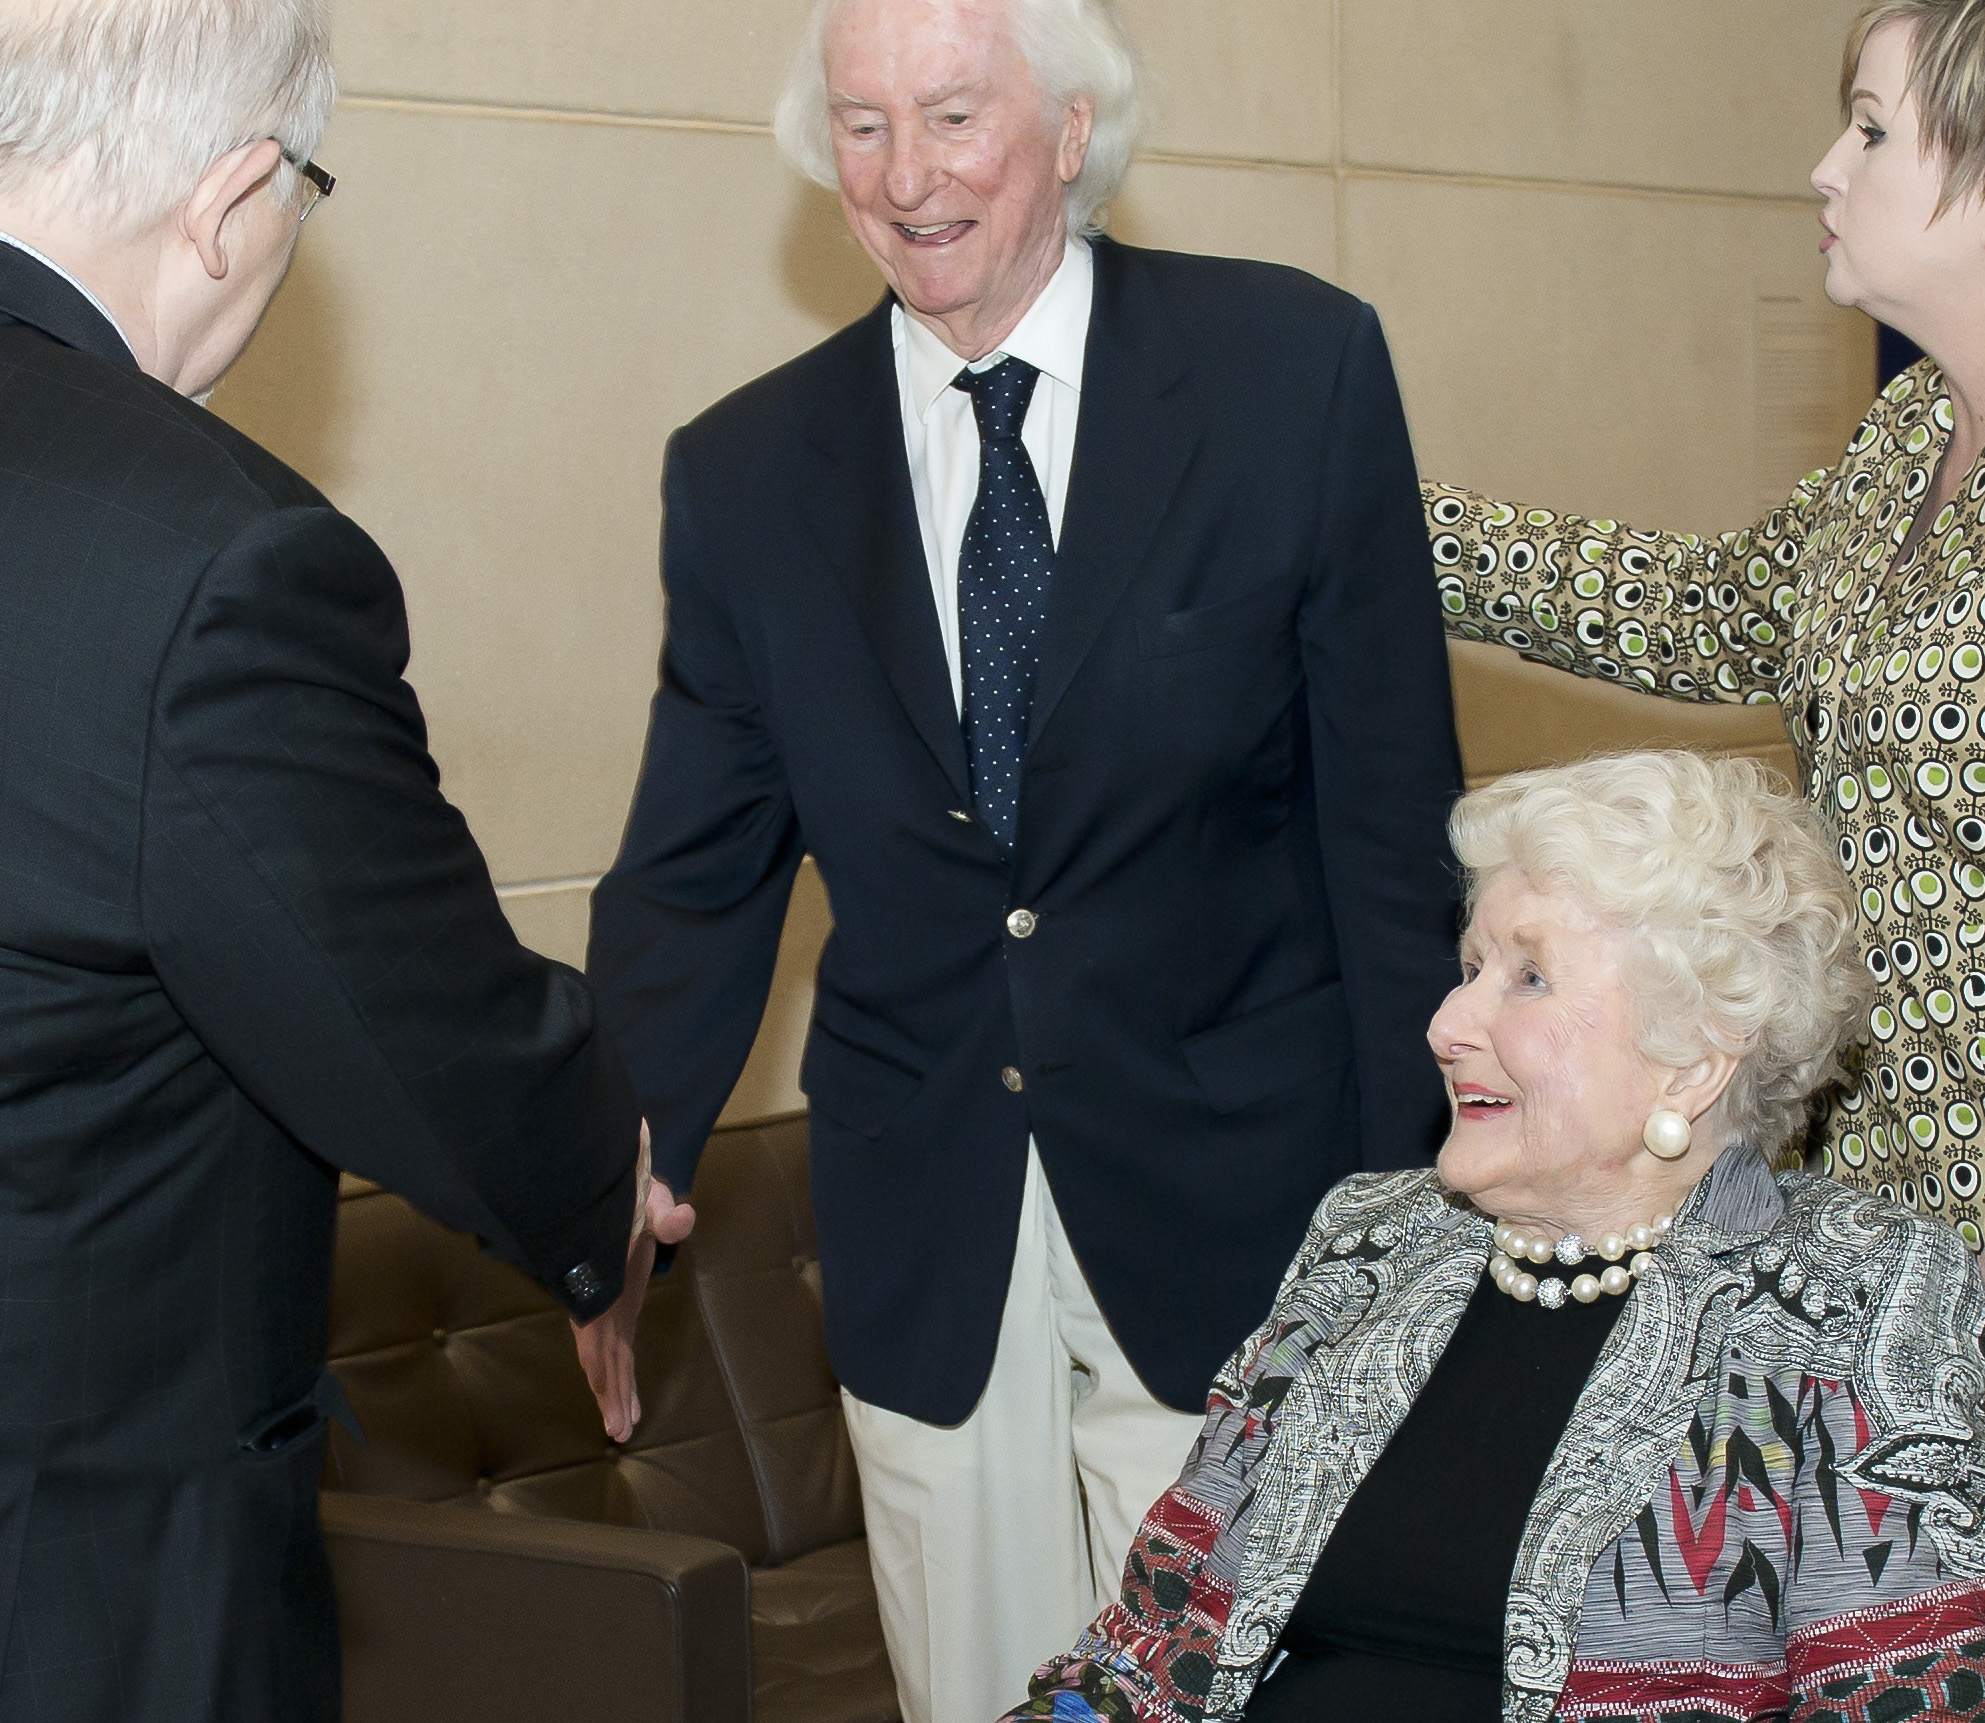 Dr. Richard Brettell greets the Institute's founders, Edith and Peter O'Donnell